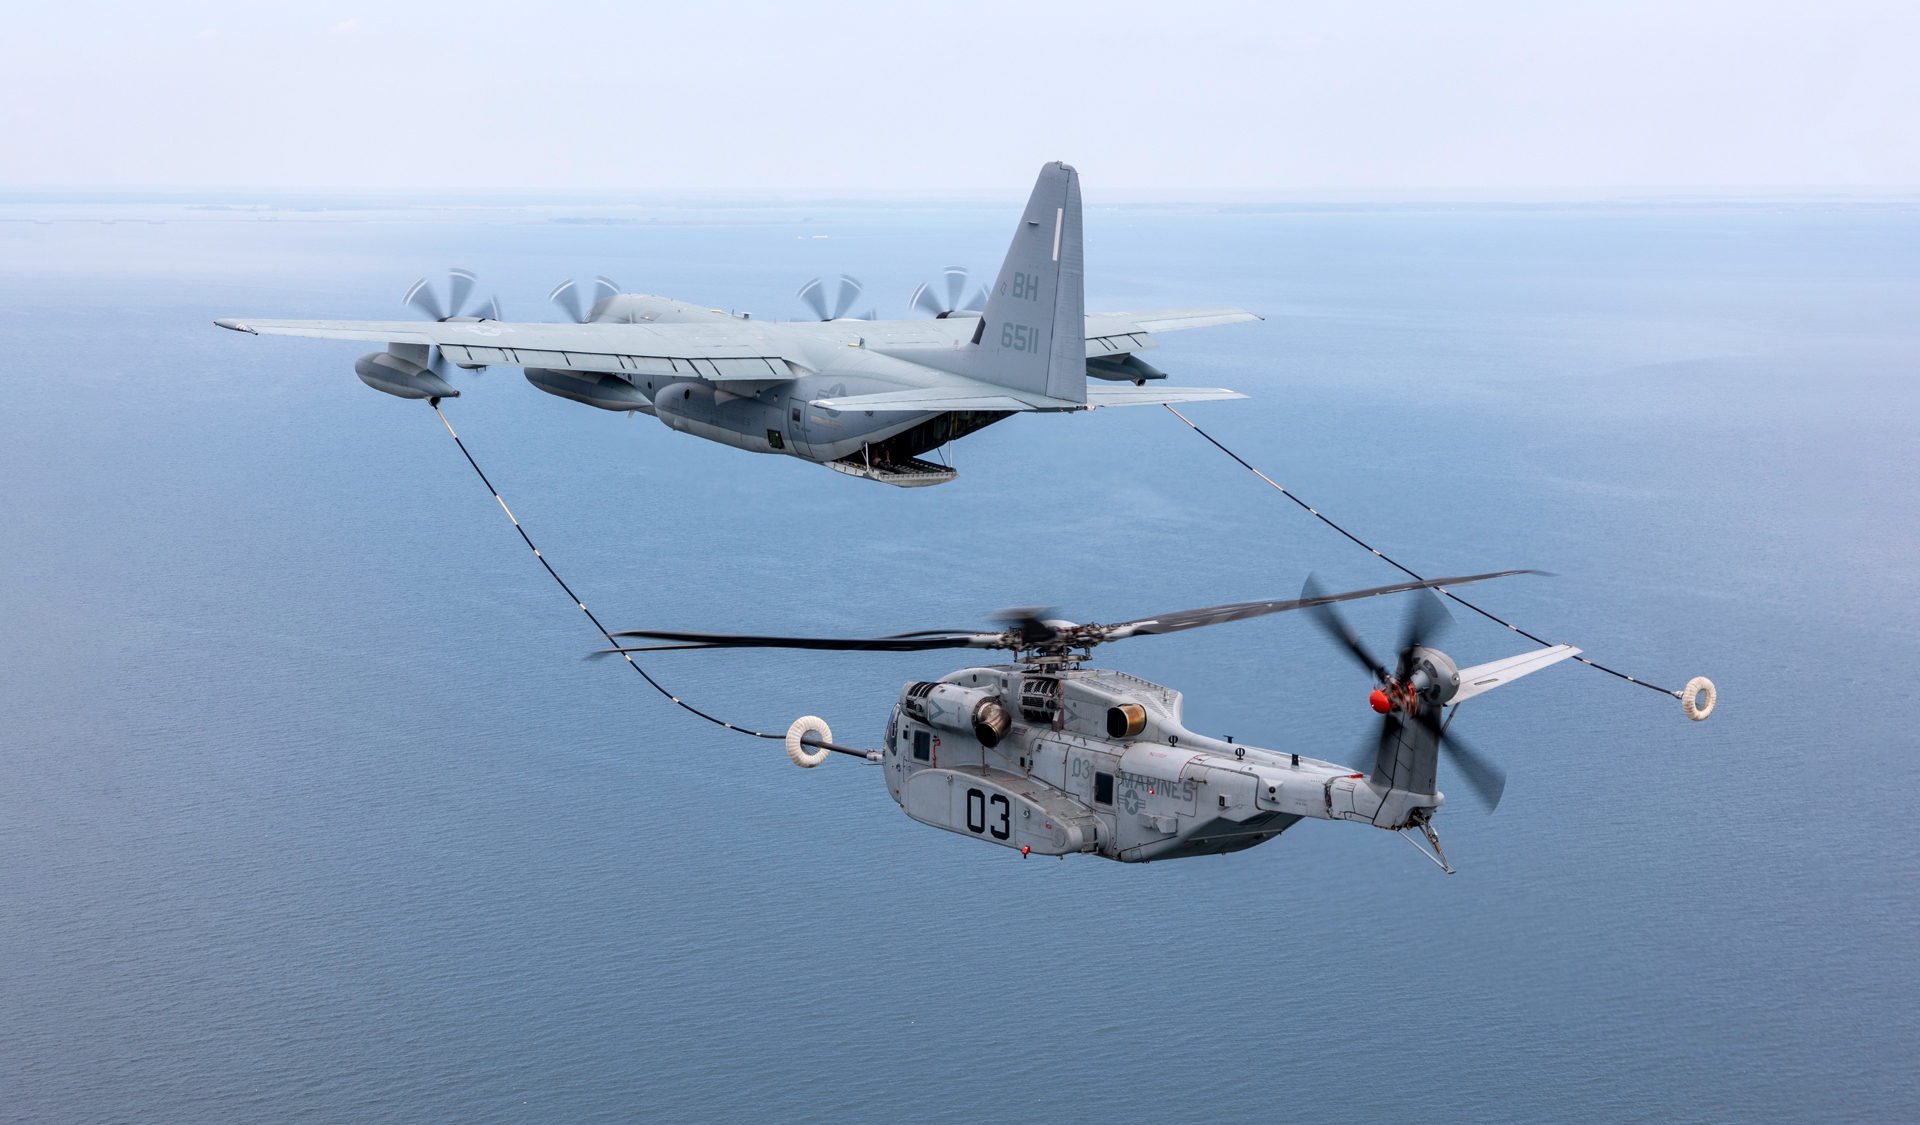 CH-35K helicopter air-to-air refueling (AAR)